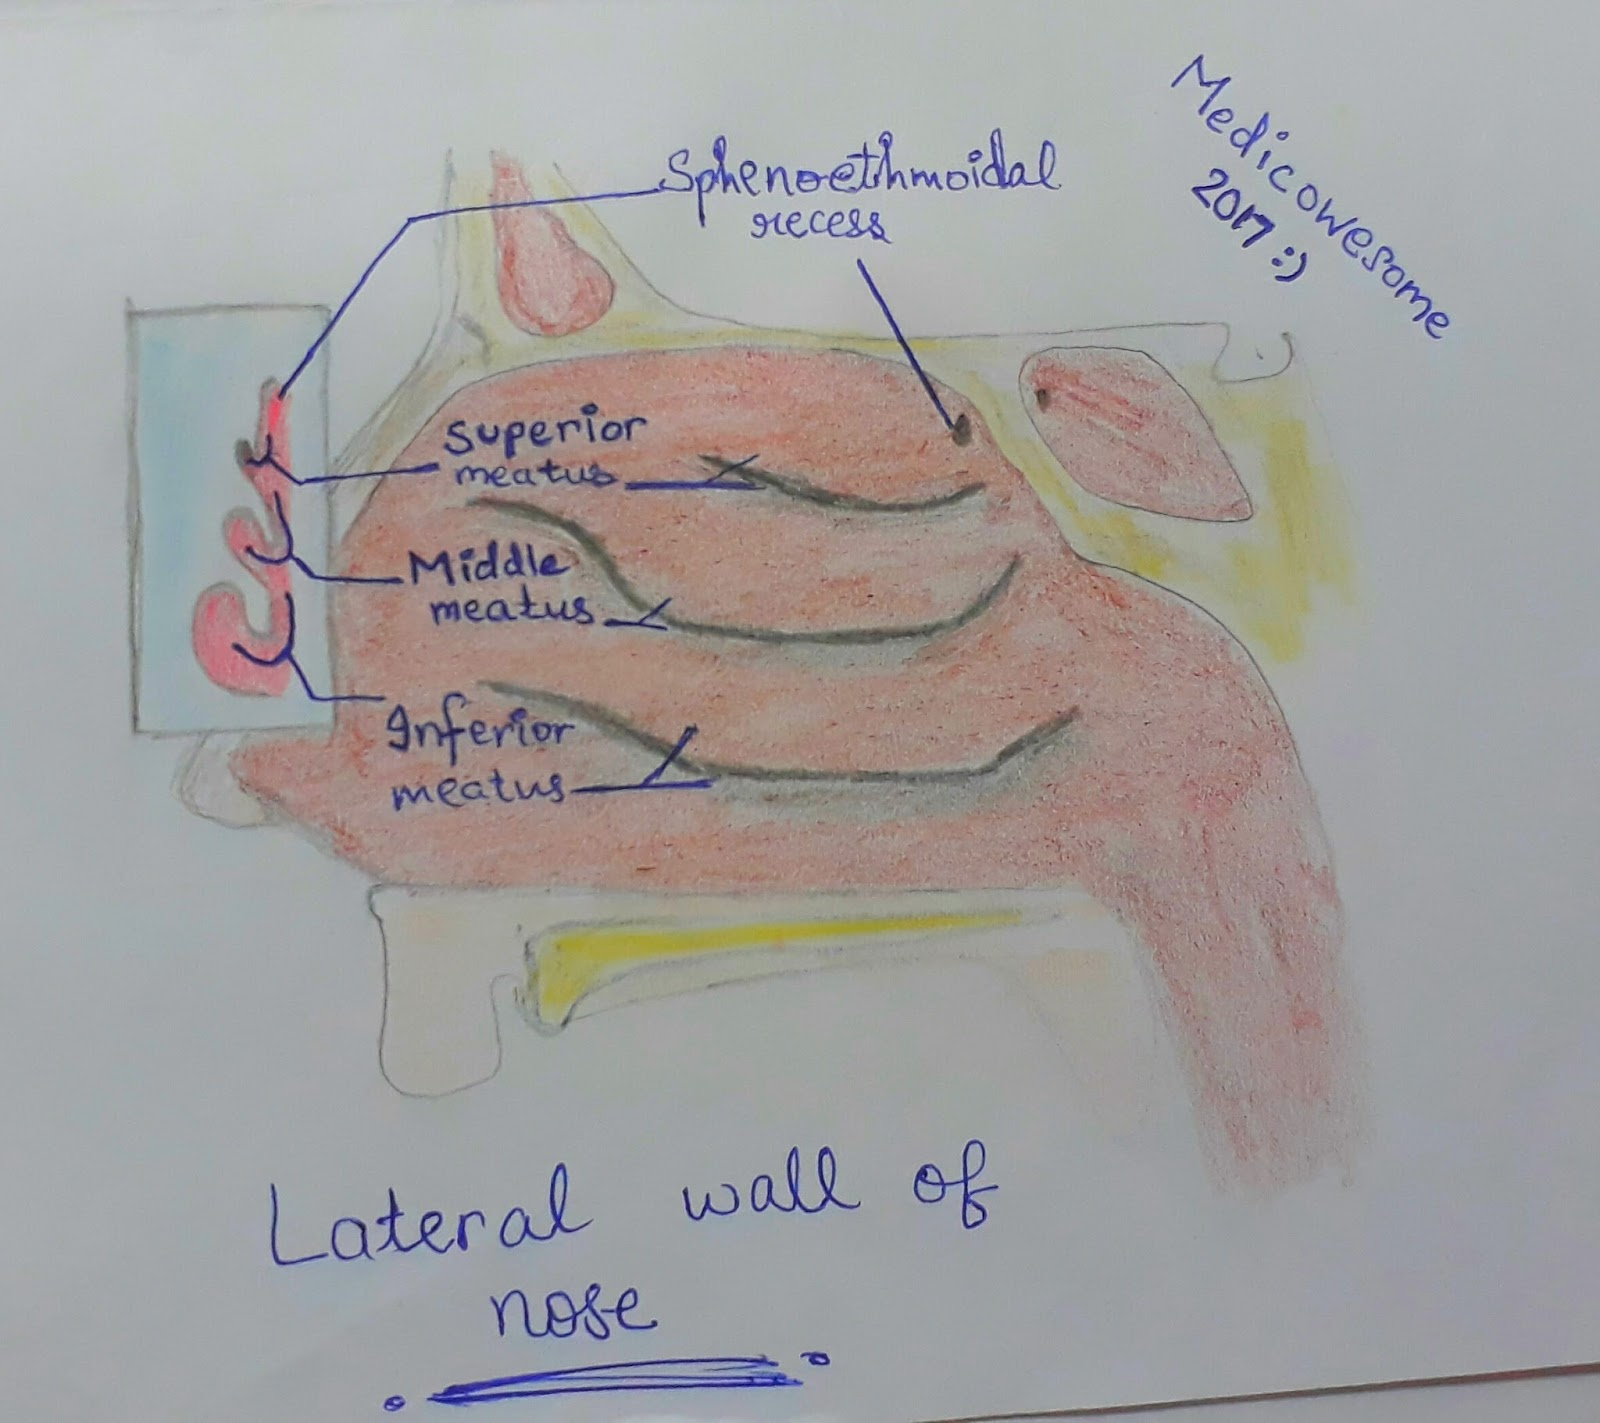 Medicowesome: The Basics : Lateral wall of Nasal cavity